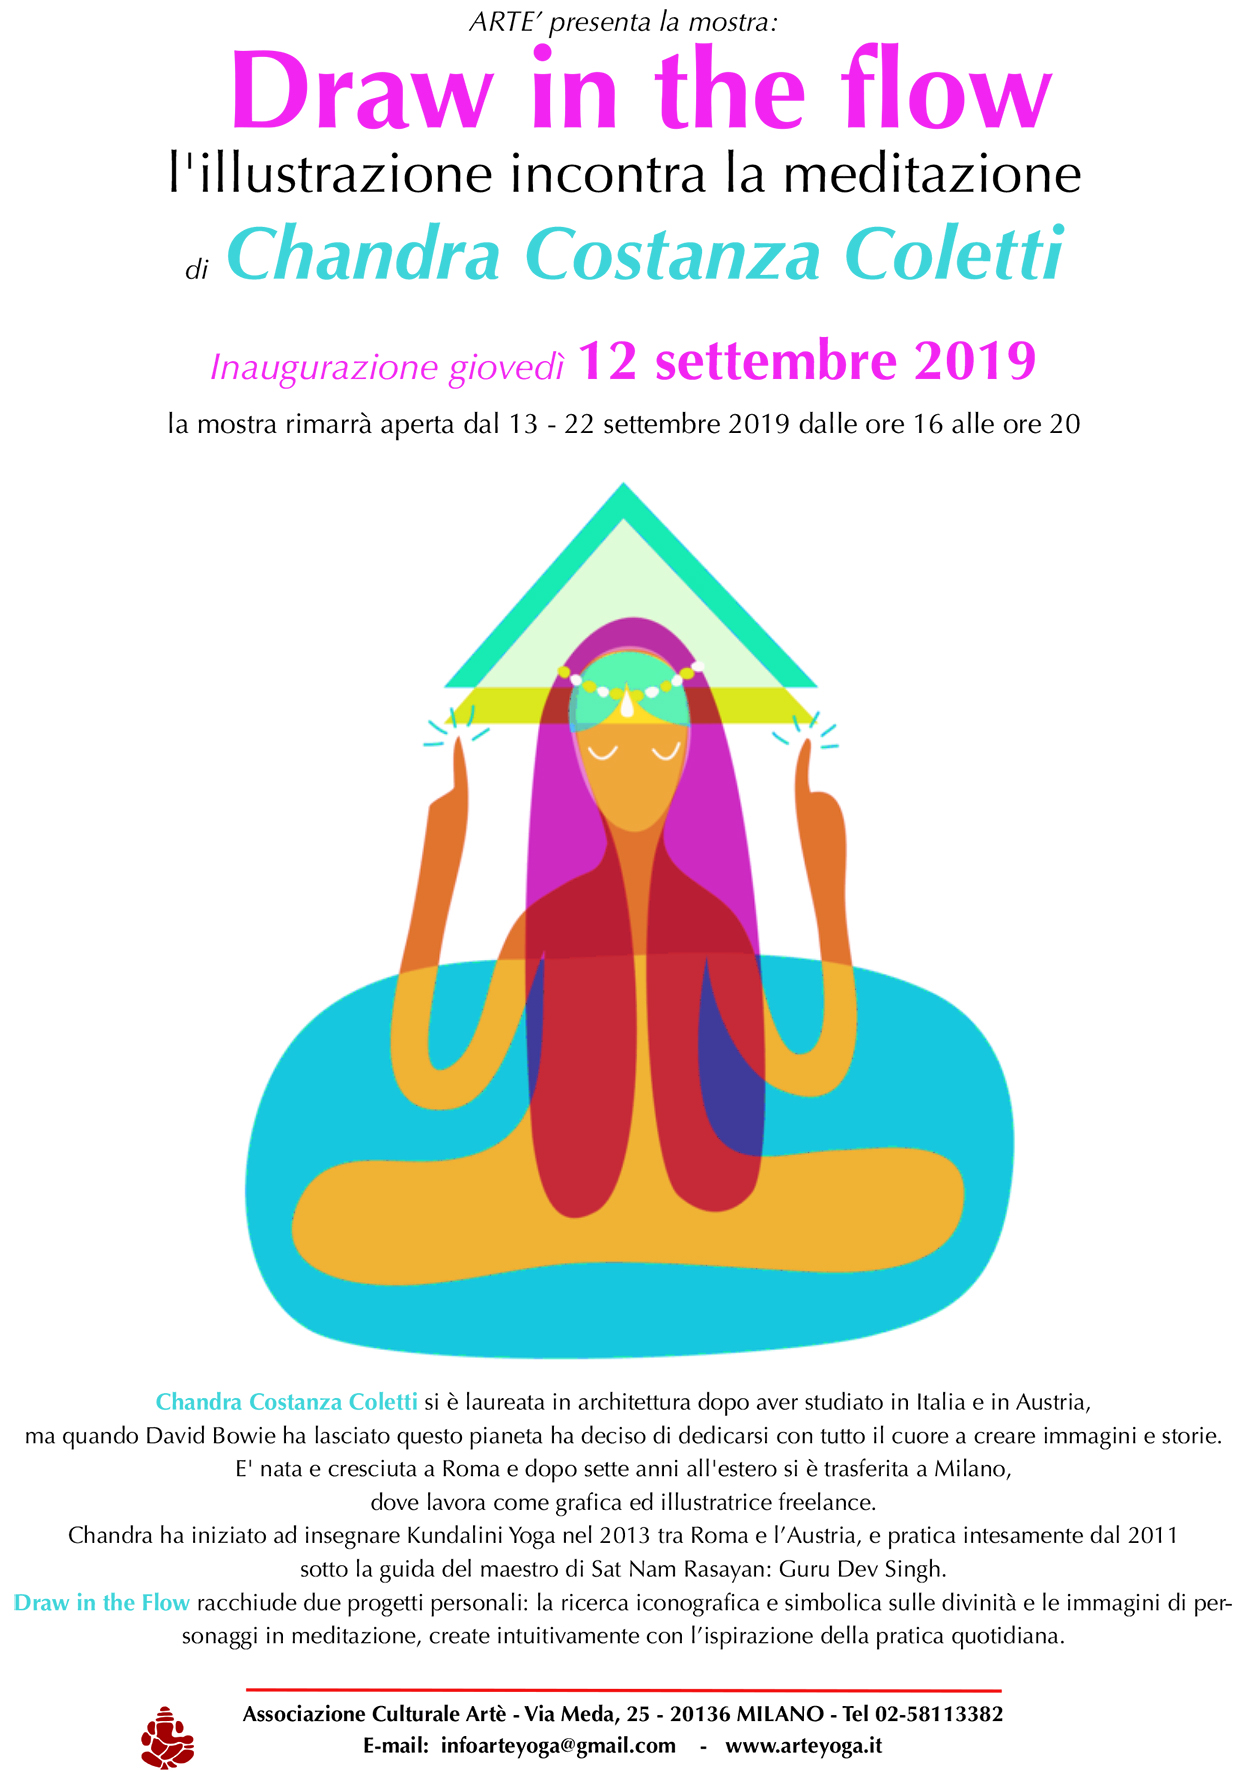 Draw in the flow - 12 settembre 2019